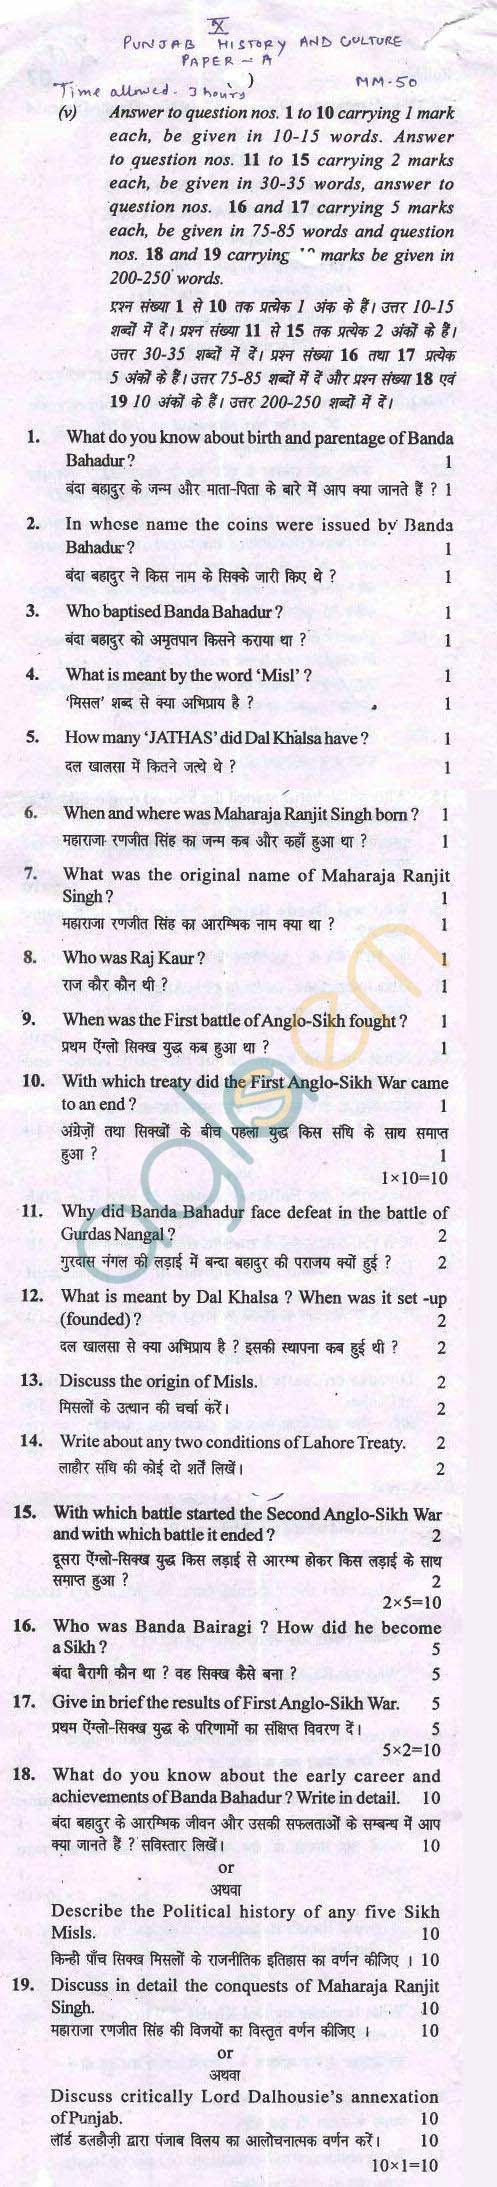 PSEB Sample Paper for Class 10 Punjab History and Culture